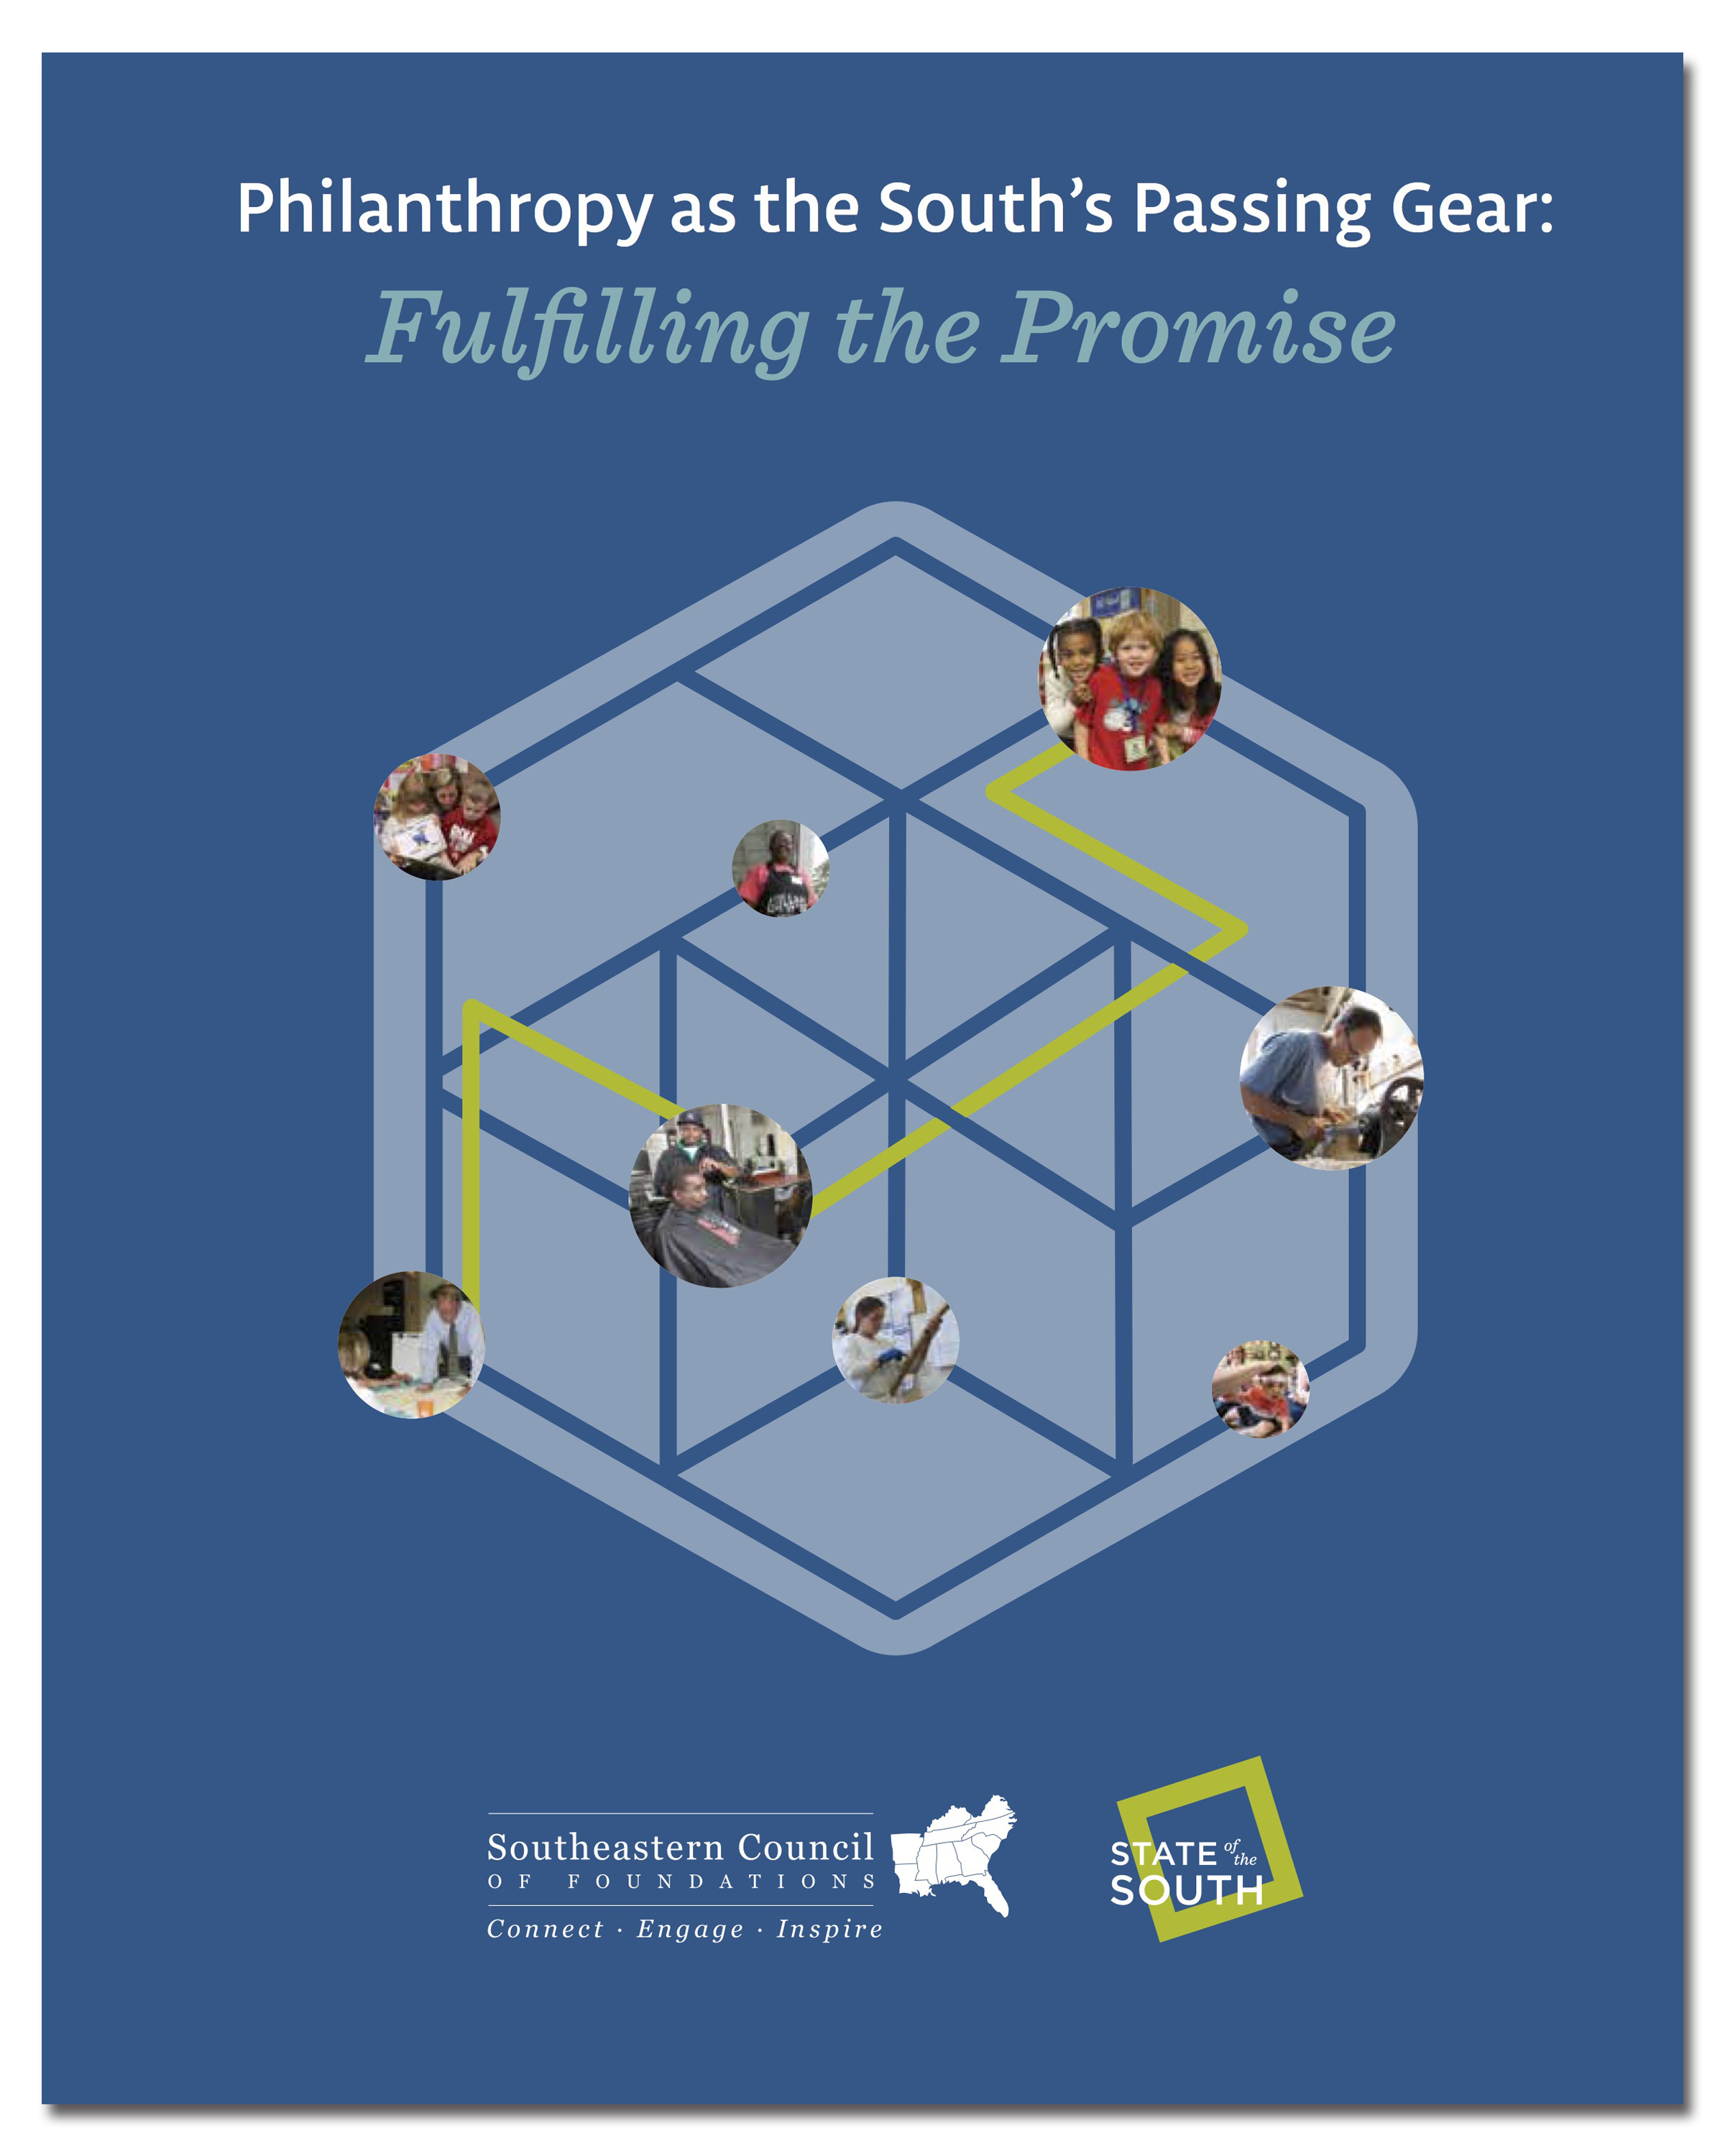 Cover image of Philanthropy as the South's Passing Gear: Fulfilling the Promise